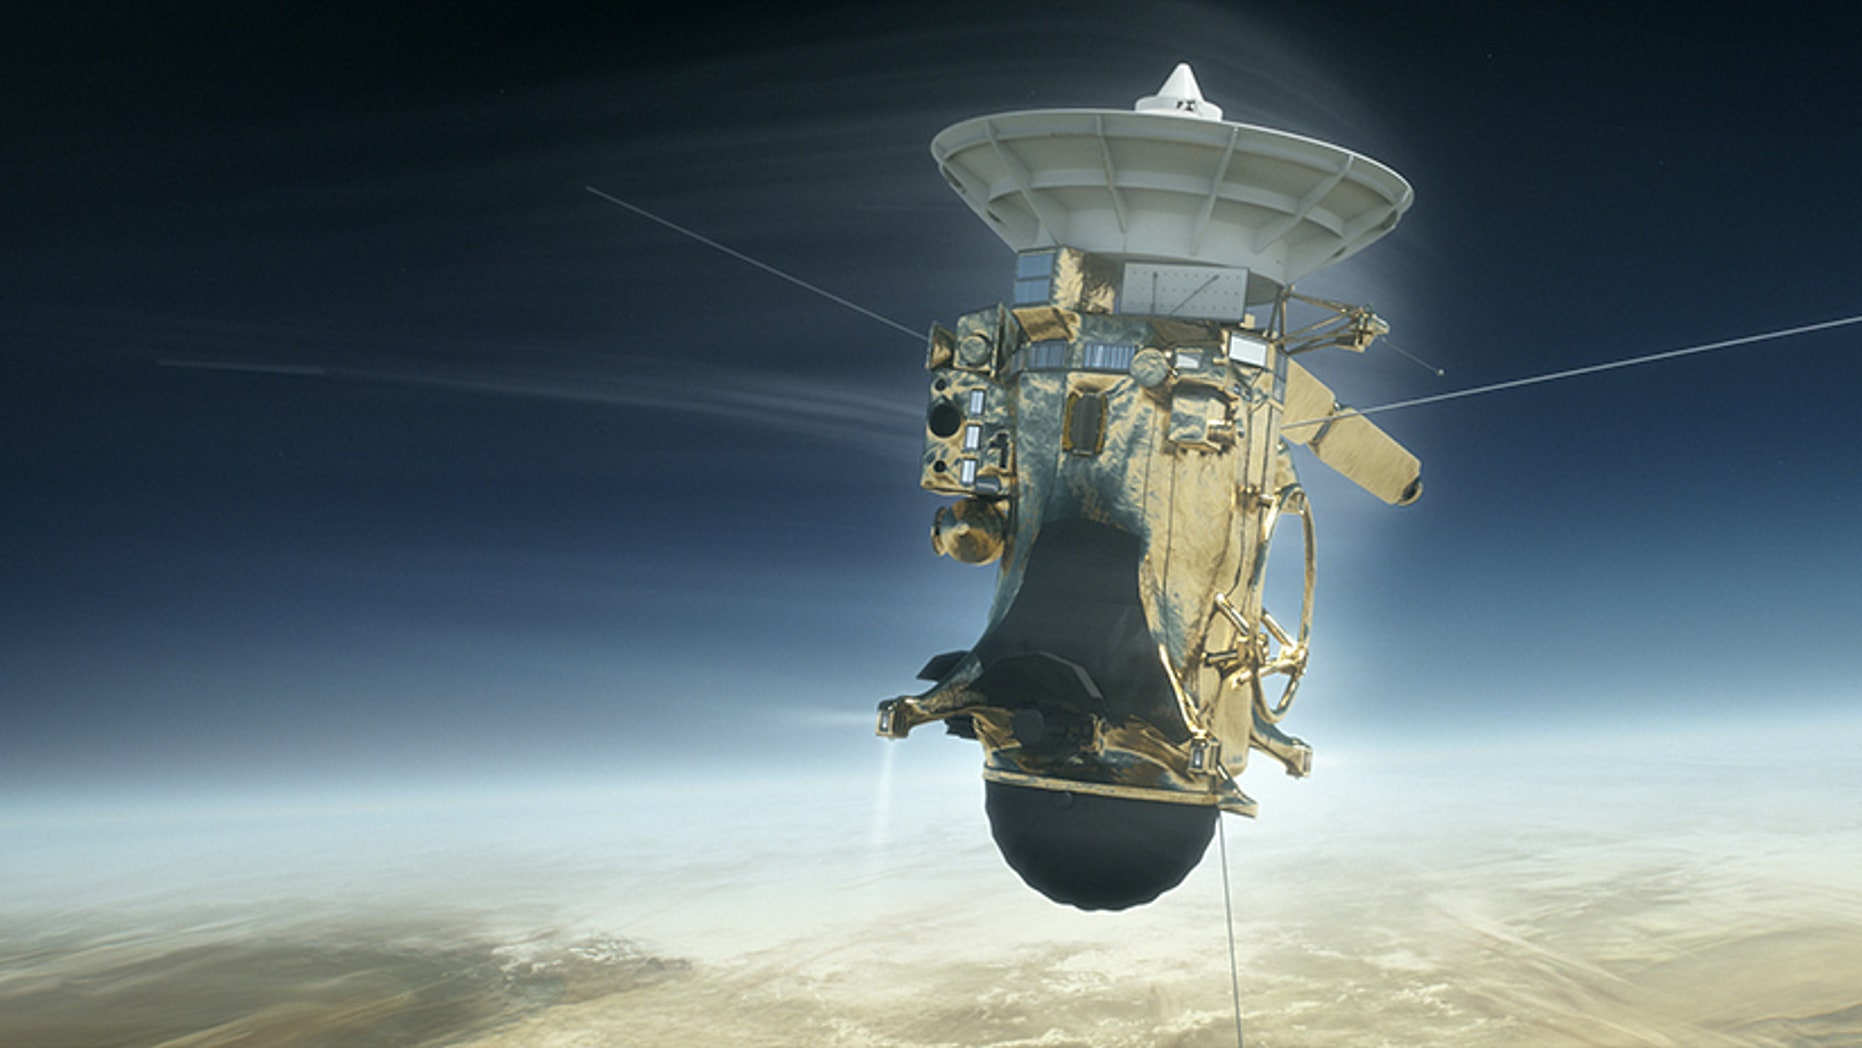 Artist's impression of NASA's Cassini spacecraft plunging into Saturn's atmosphere on Sept. 15, 2017.